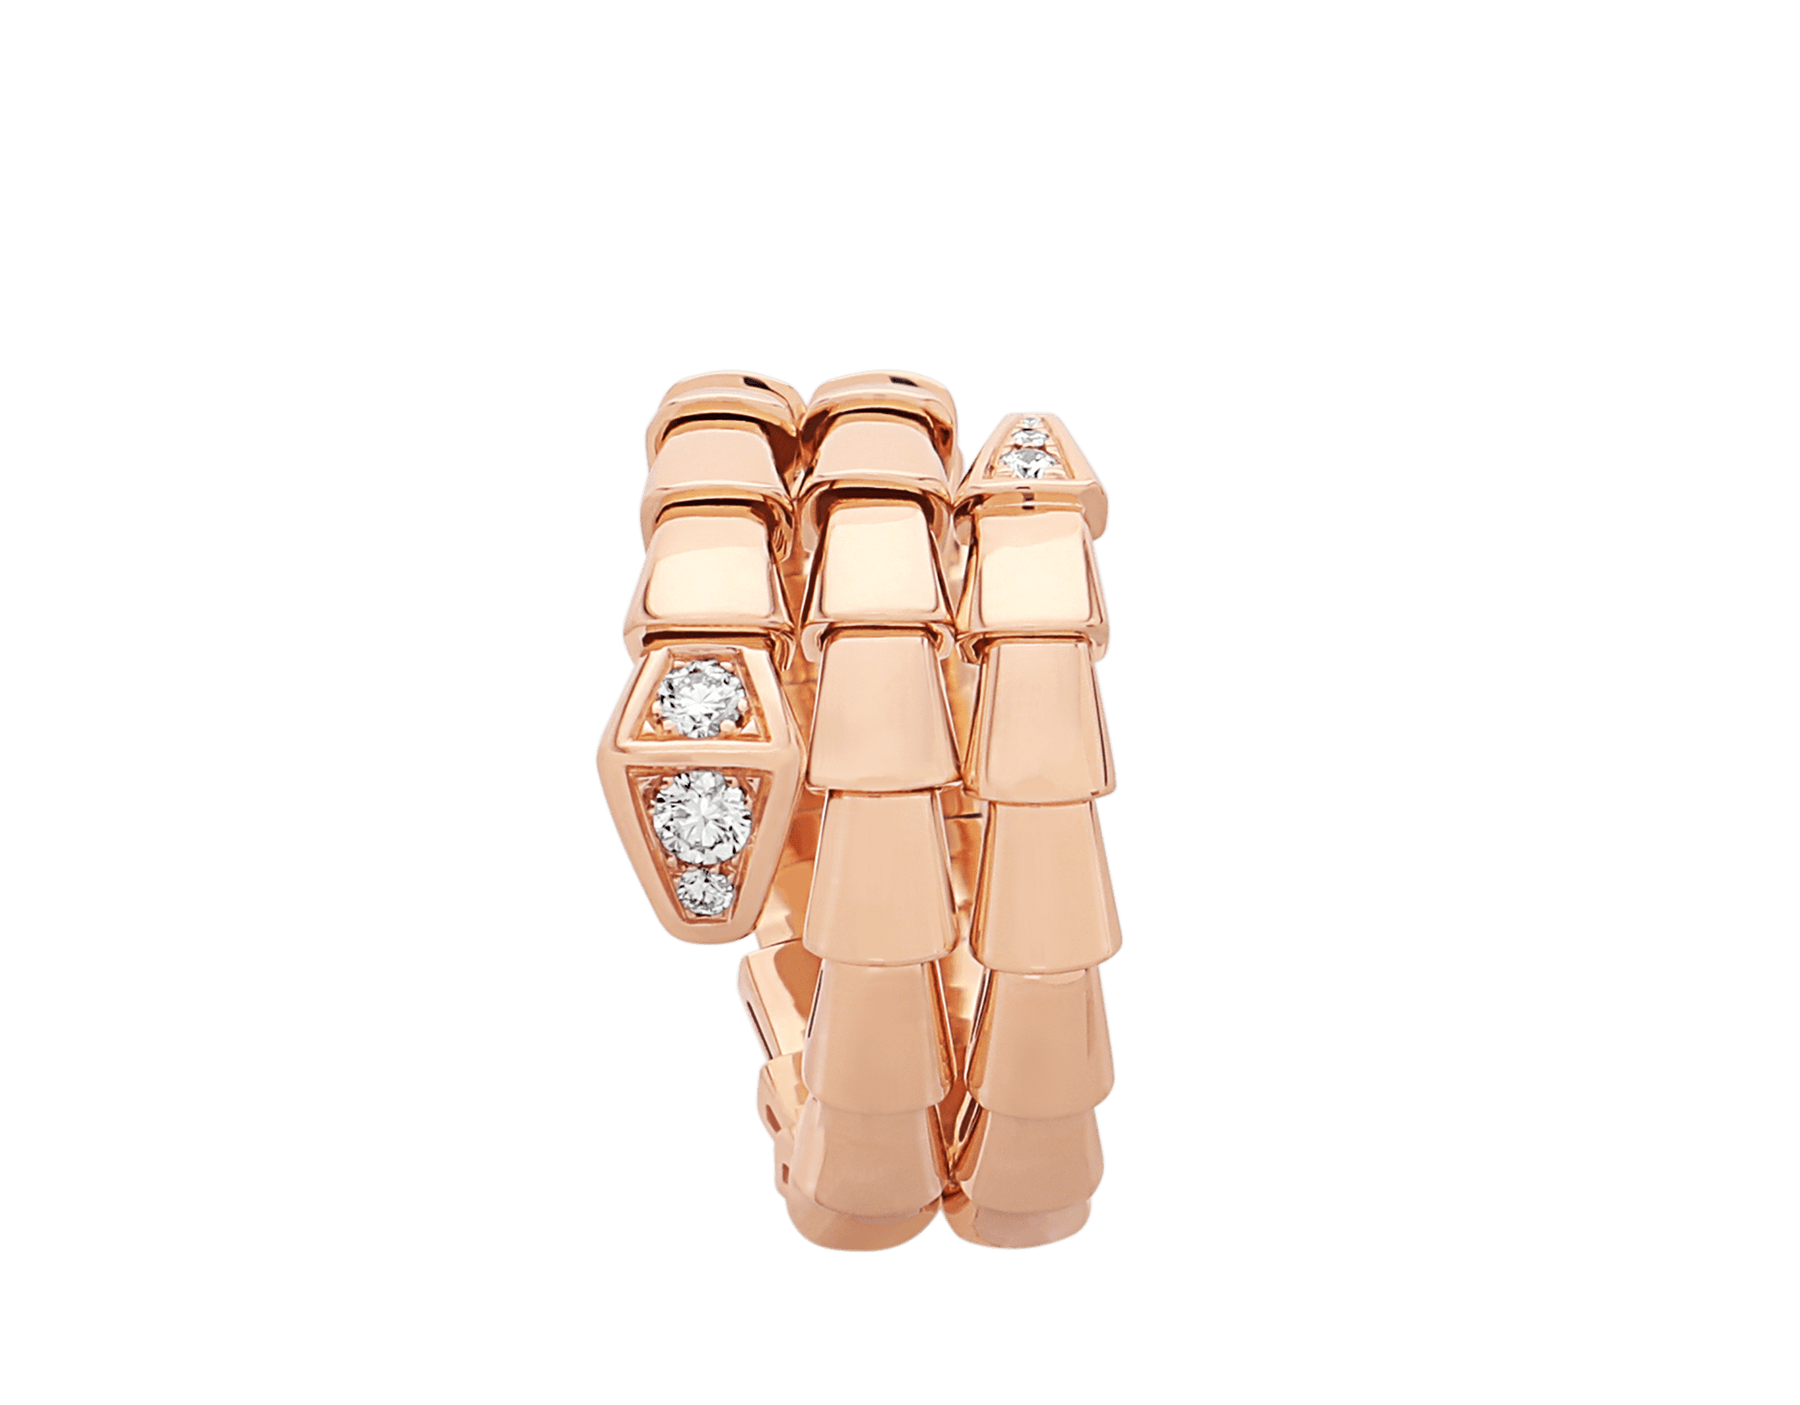 Serpenti Viper two-coil 18 kt rose gold ring set with demi-pavé diamonds AN858824 image 2